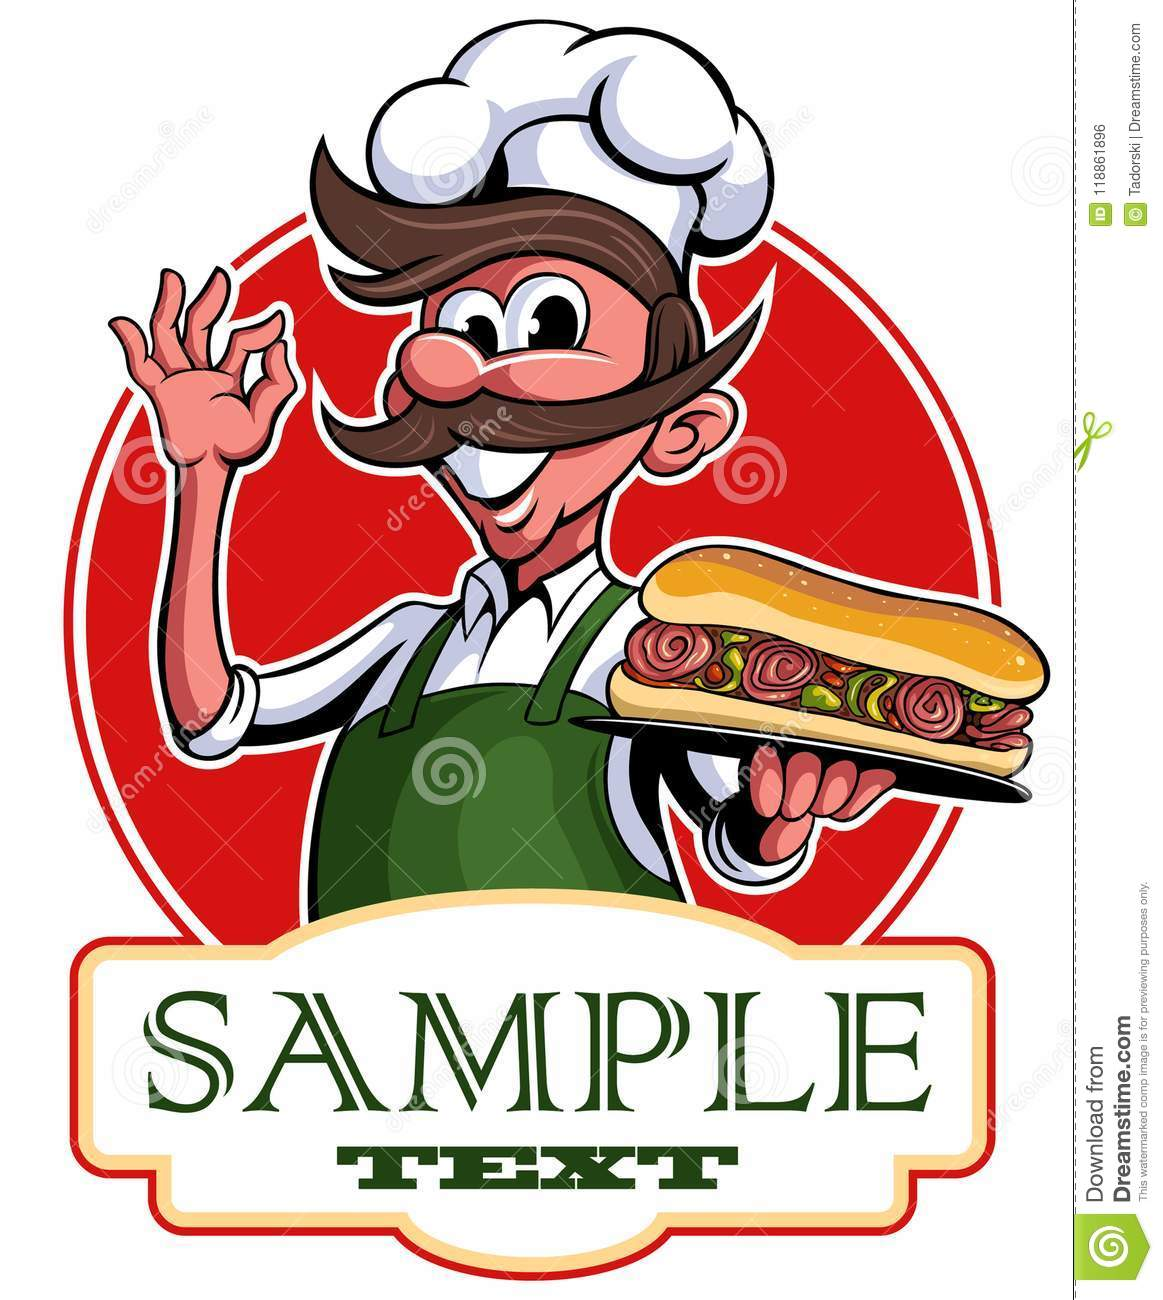 sandwich cartoon stock illustrations 20 415 sandwich cartoon stock illustrations vectors clipart dreamstime https www dreamstime com chief cook offers to taste italian sandwich vector logo vector cartoon character chef s man sandwich restaurant image118861896